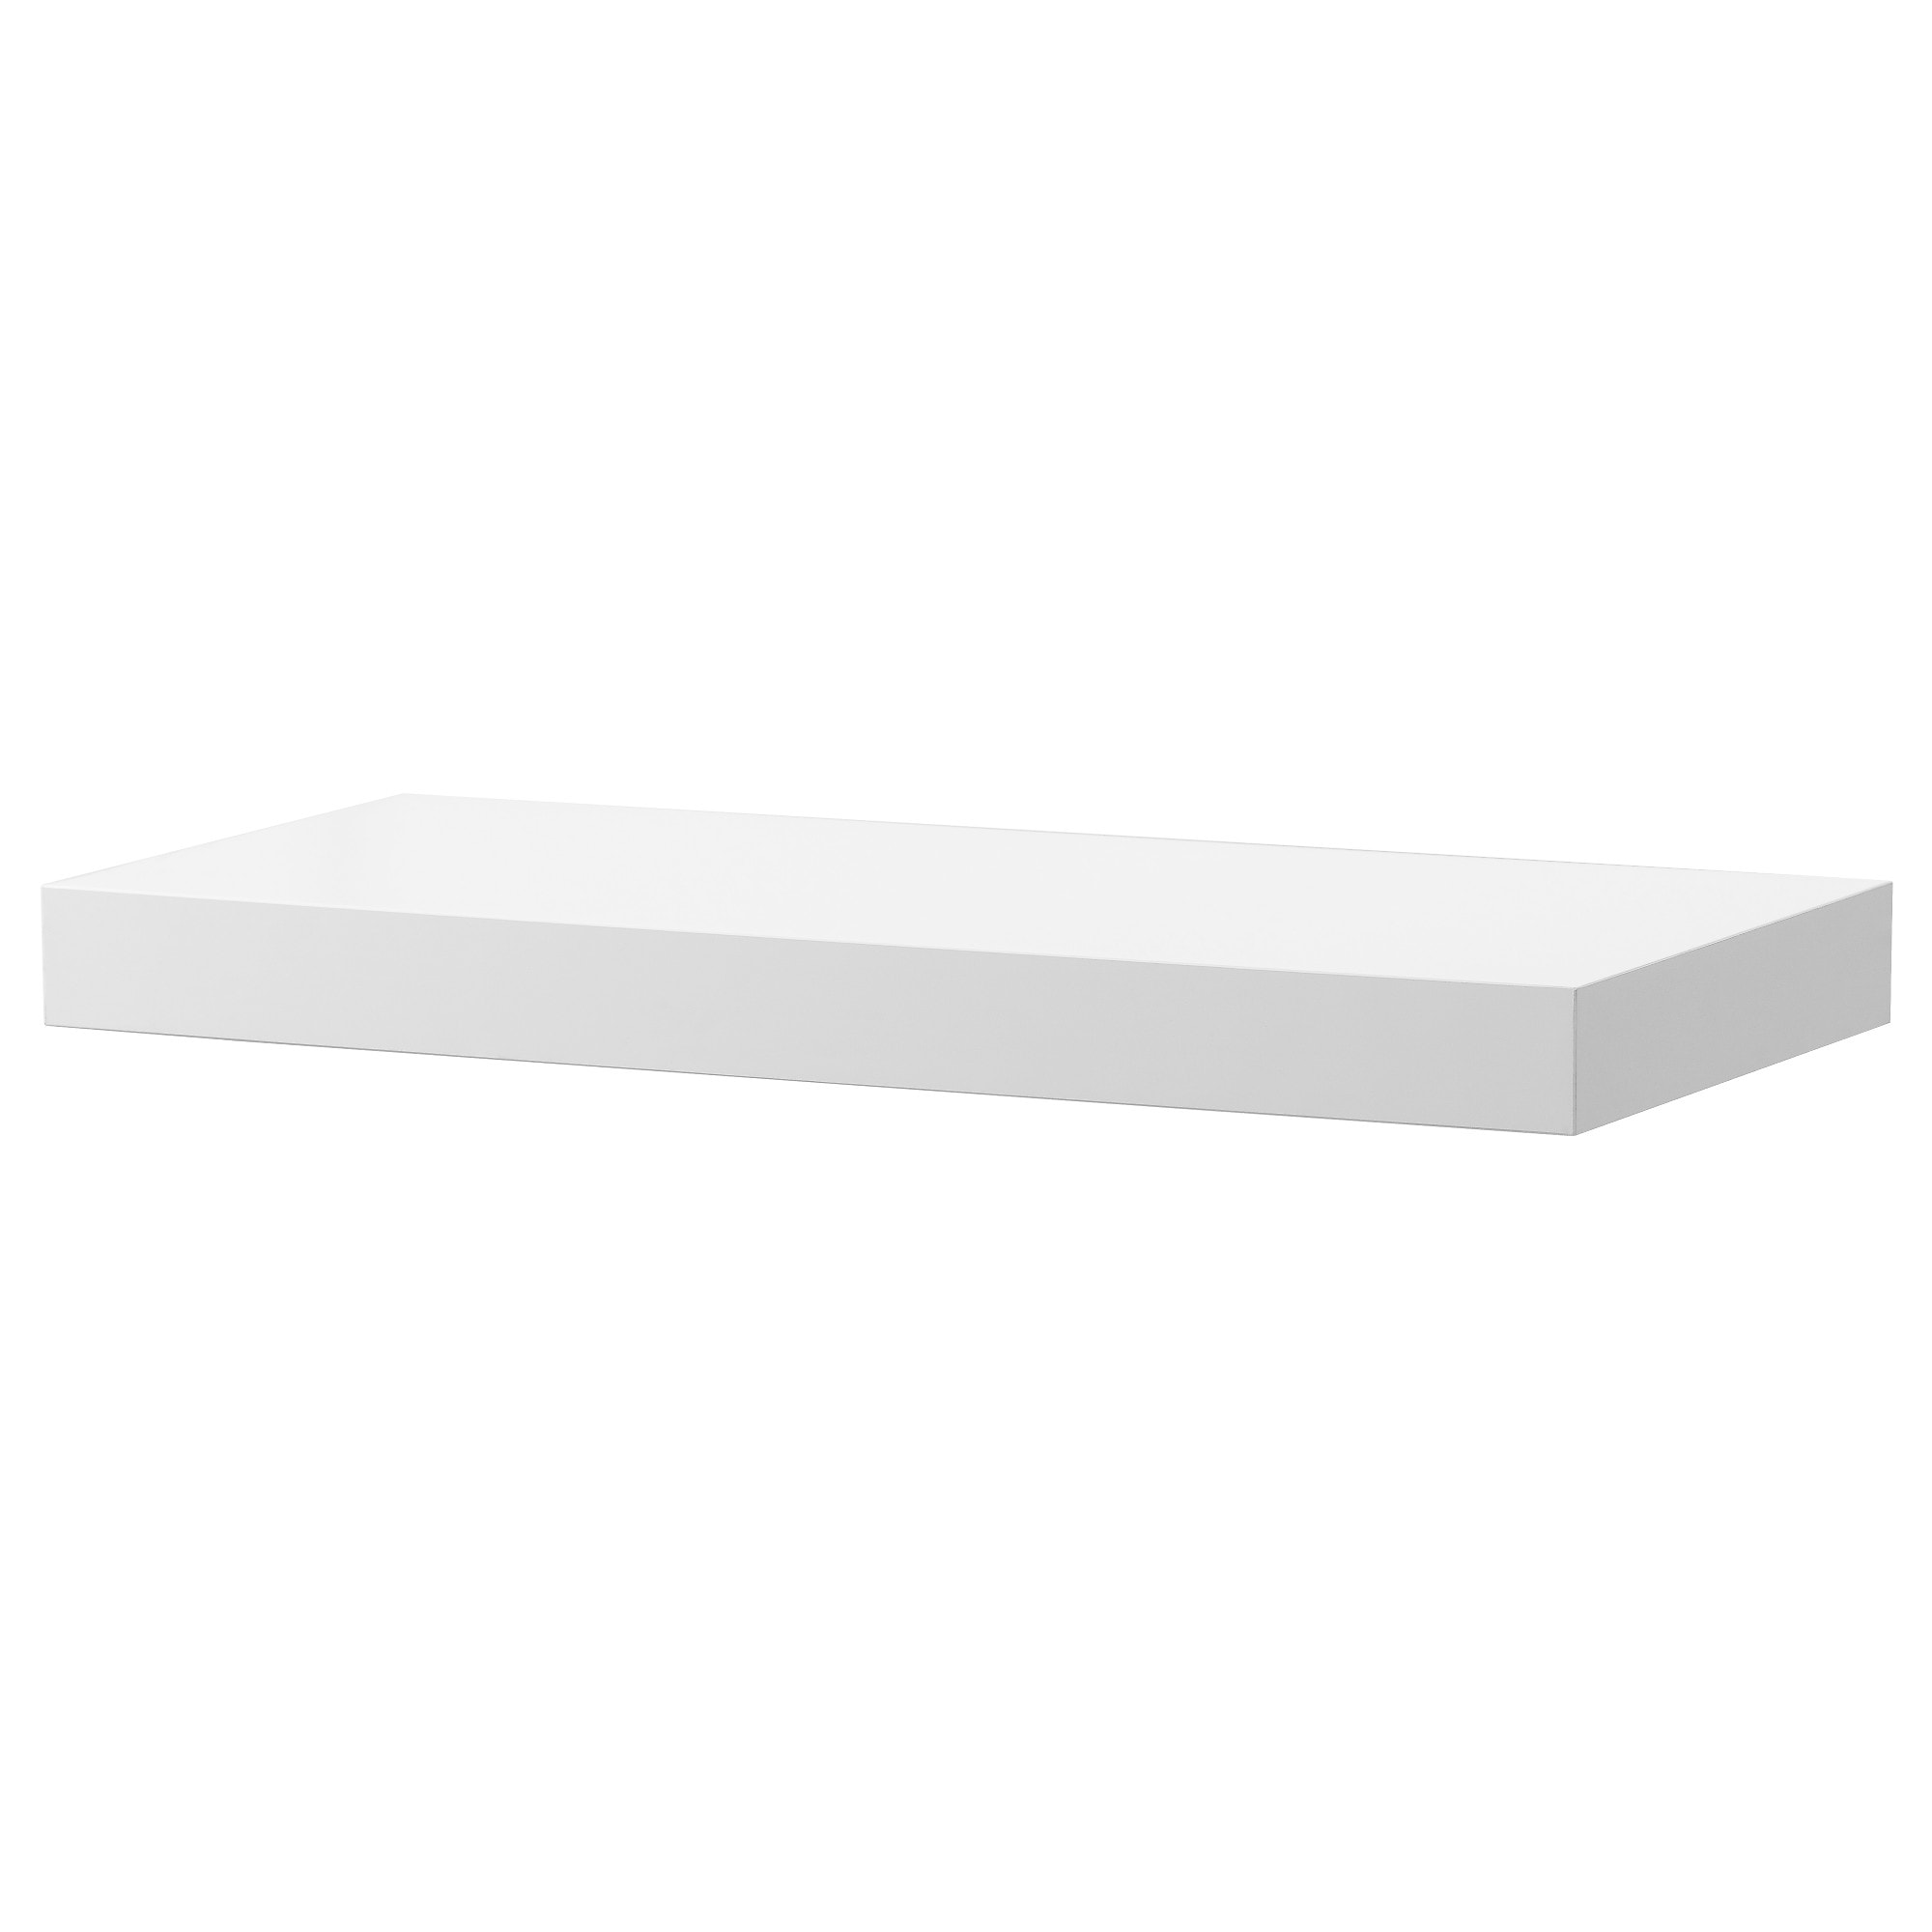 Wandrek Keuken Gamma : Floating Shelves IKEA